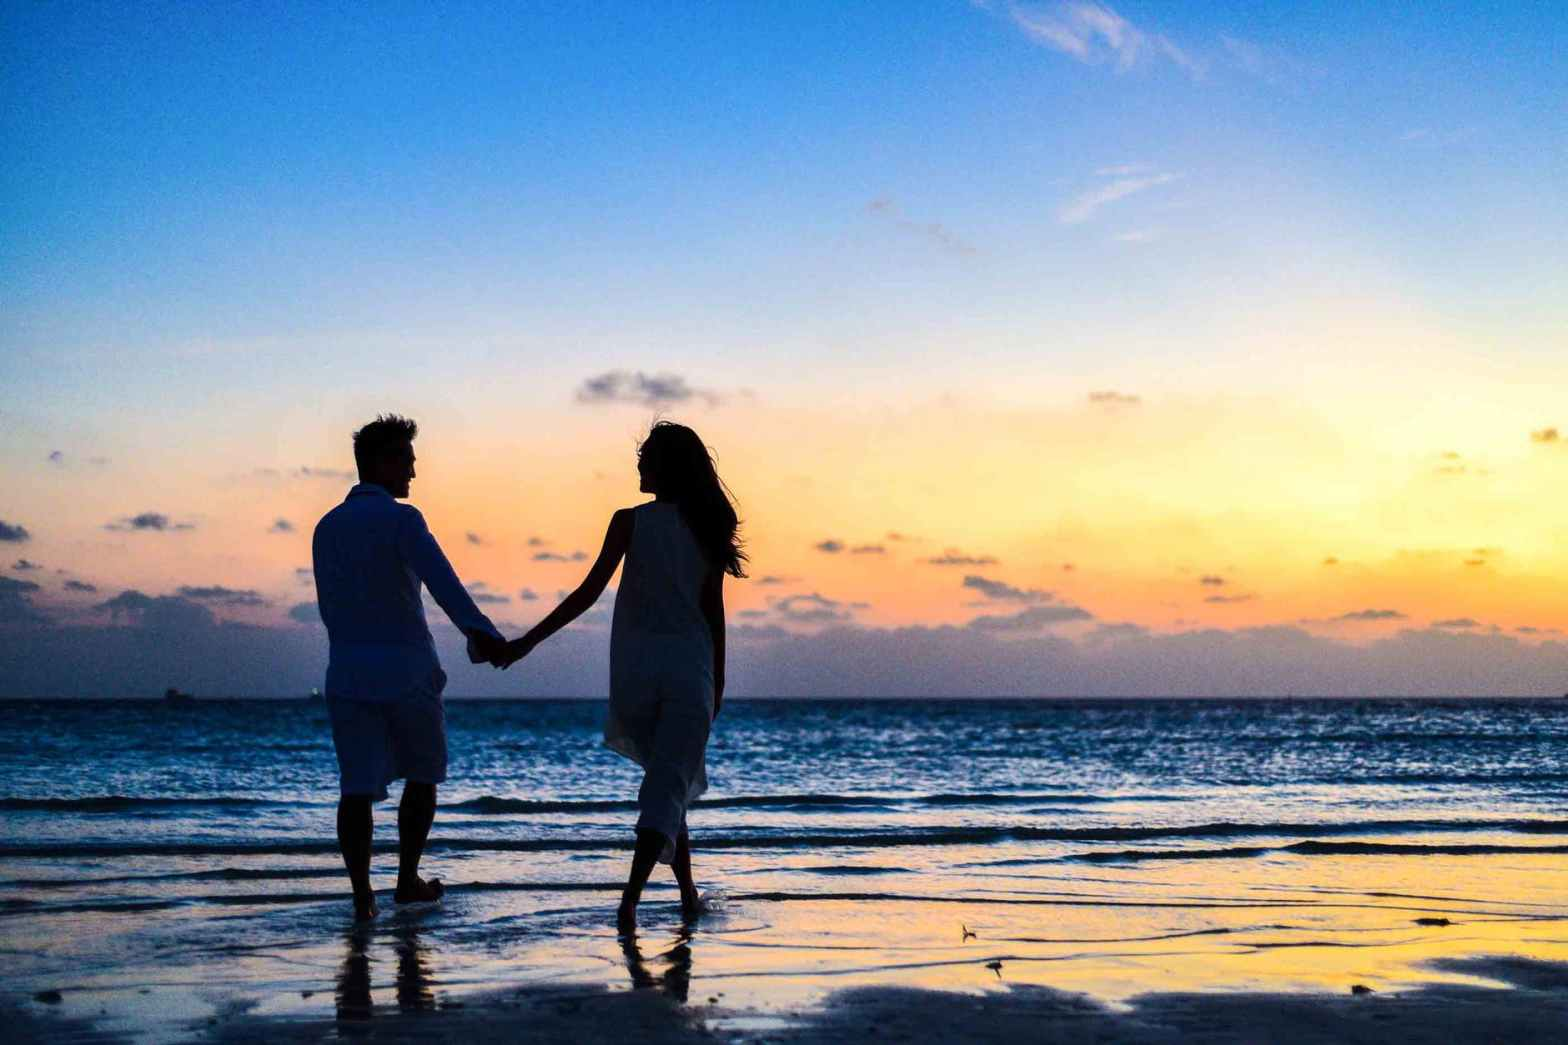 fulfilling relationship - a couple holding hands walking on a beach at sunset